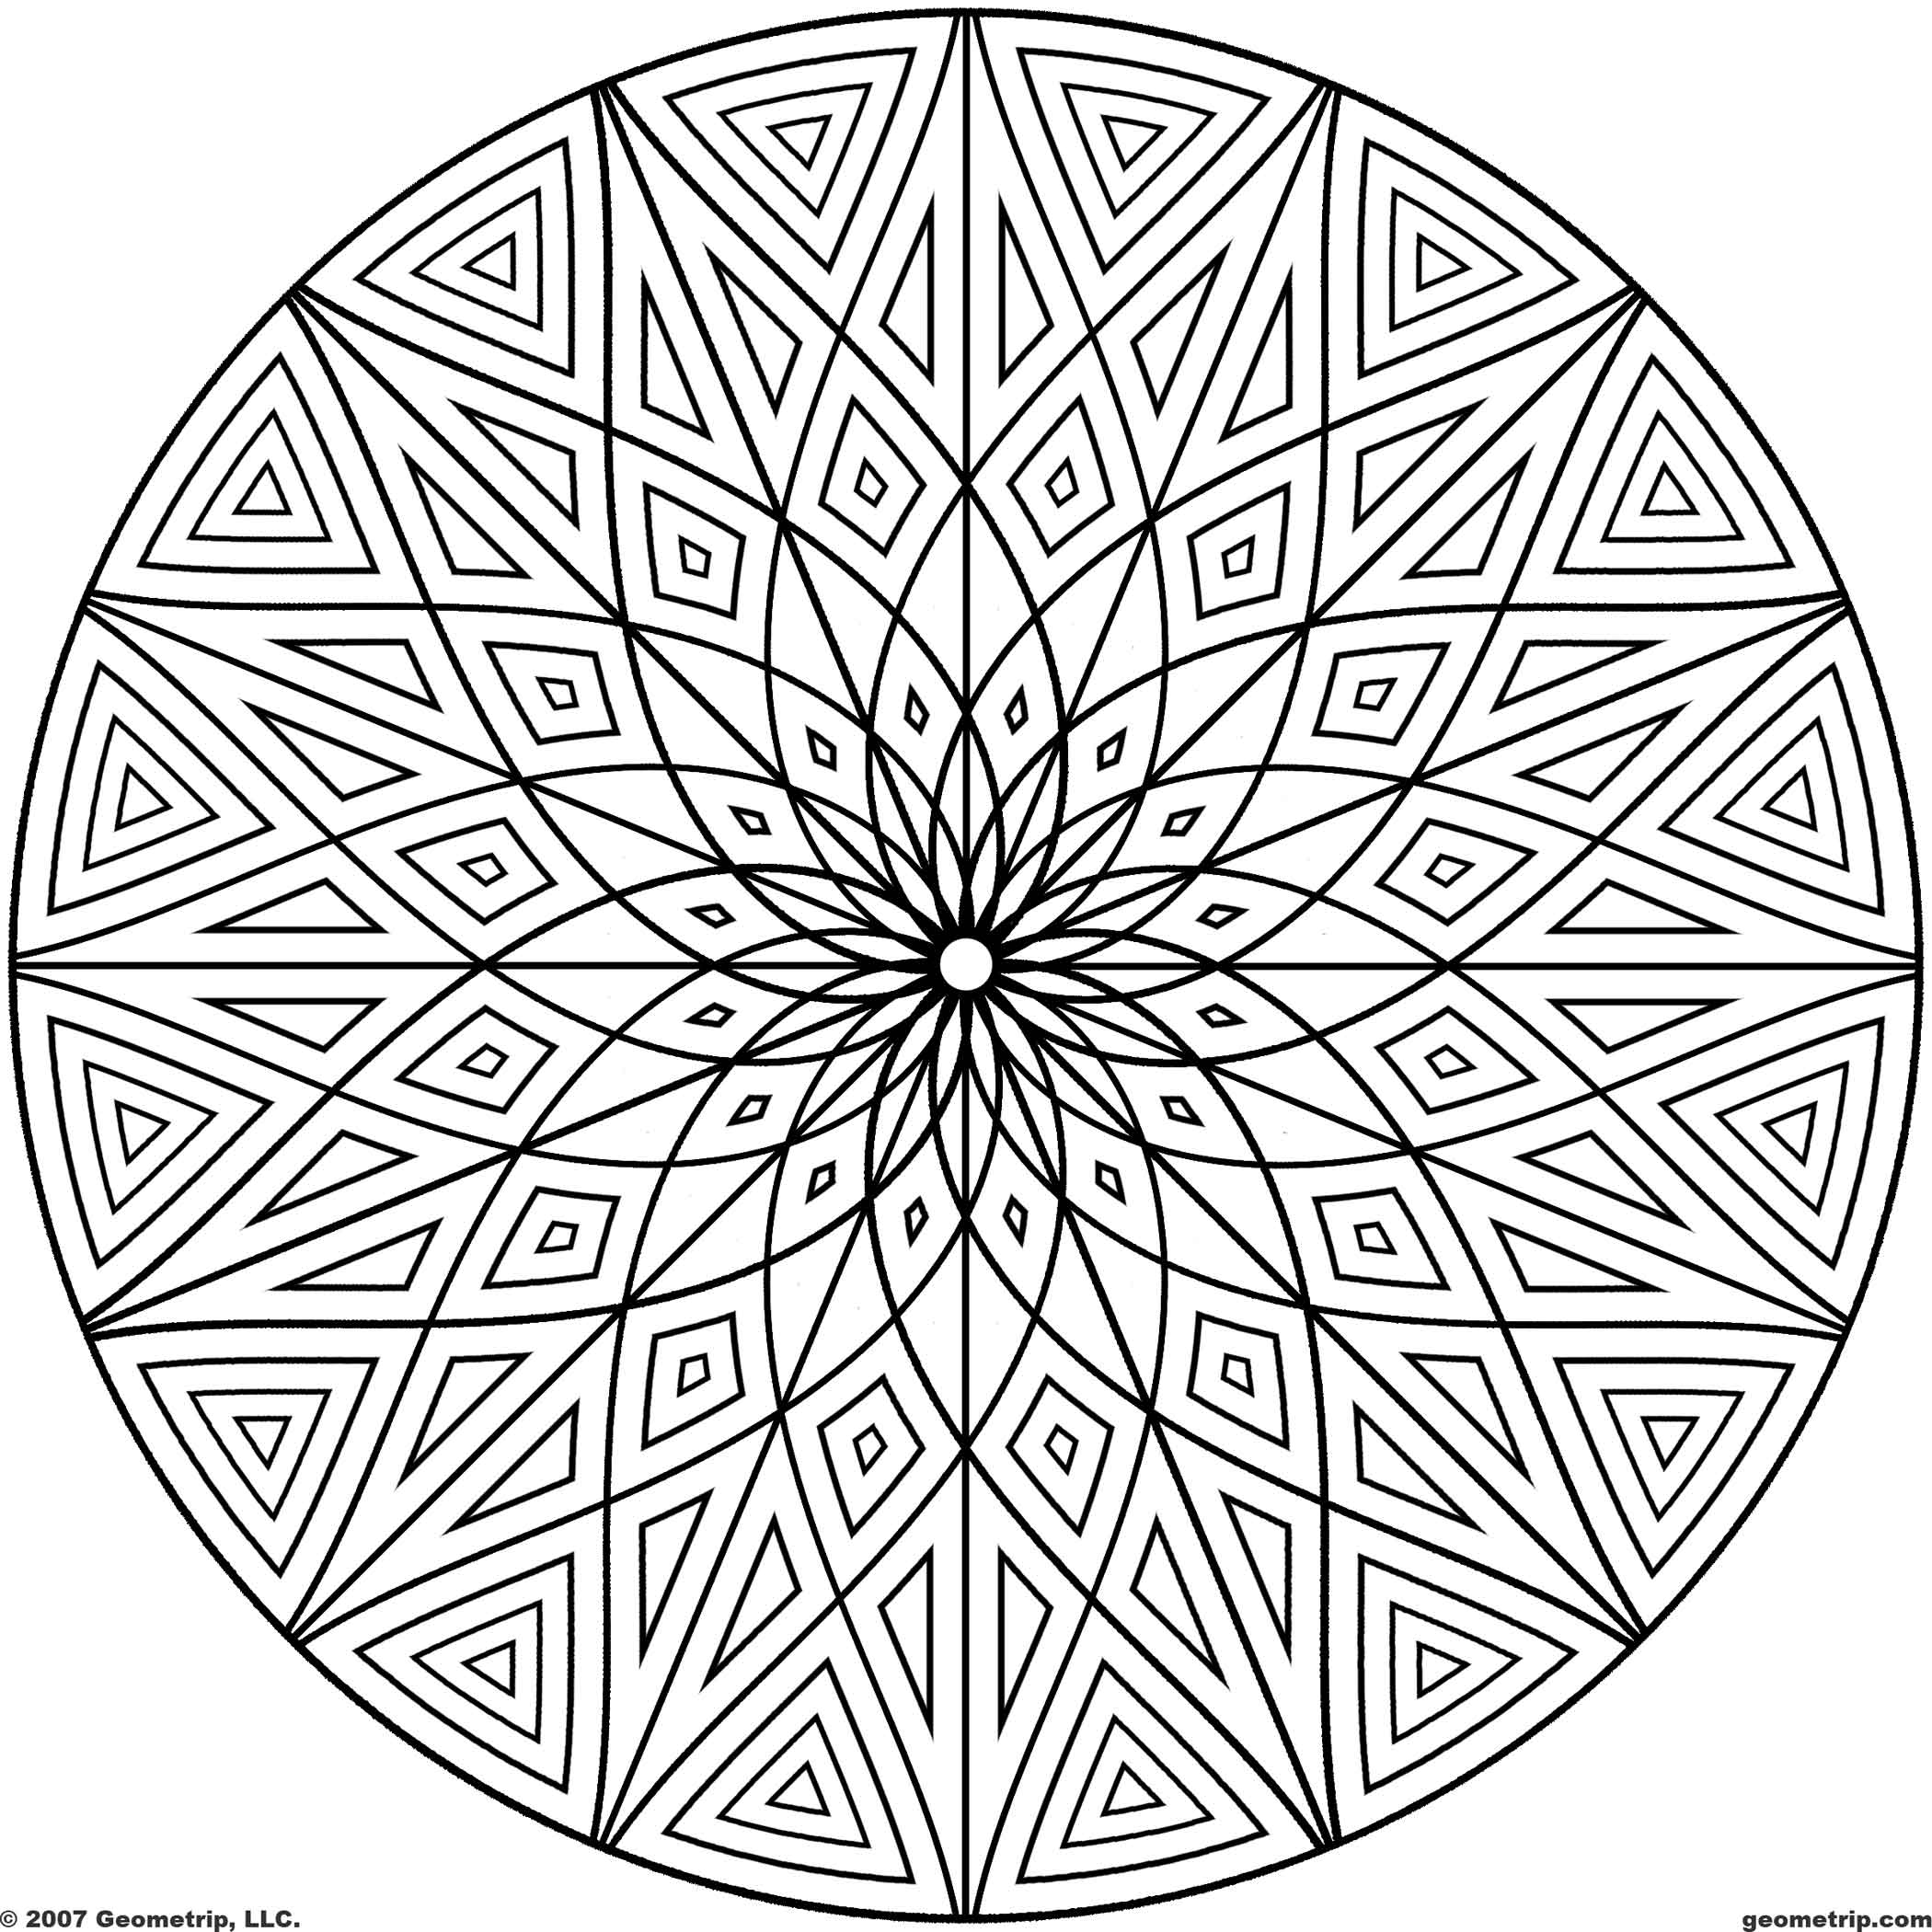 Coloring Pages Advanced Geometric Coloring Pages advanced geometric coloring pages eassume com eassume